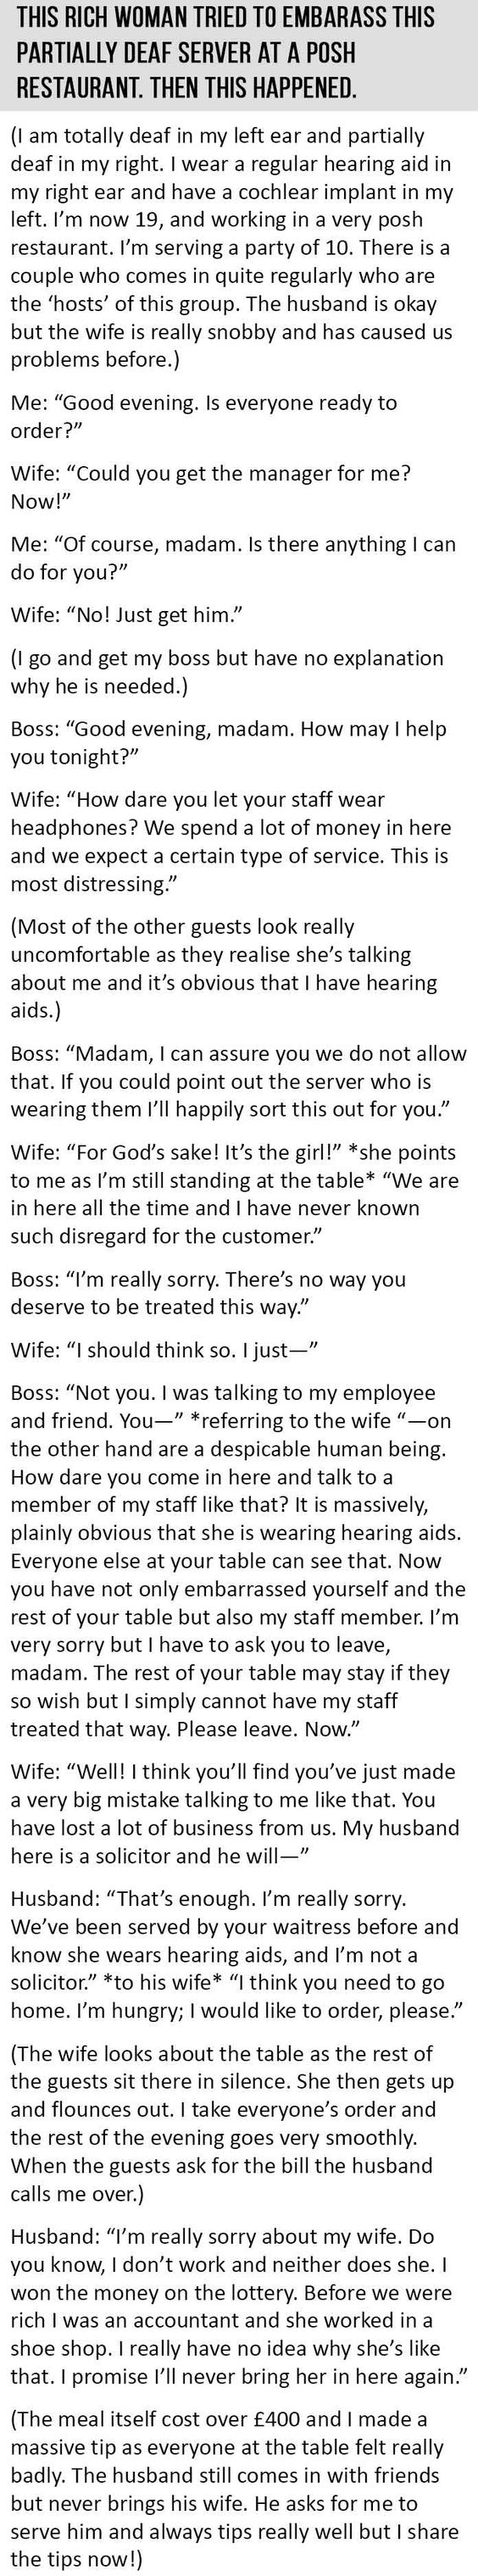 That's a really nice guy (the husband (and also the manager))